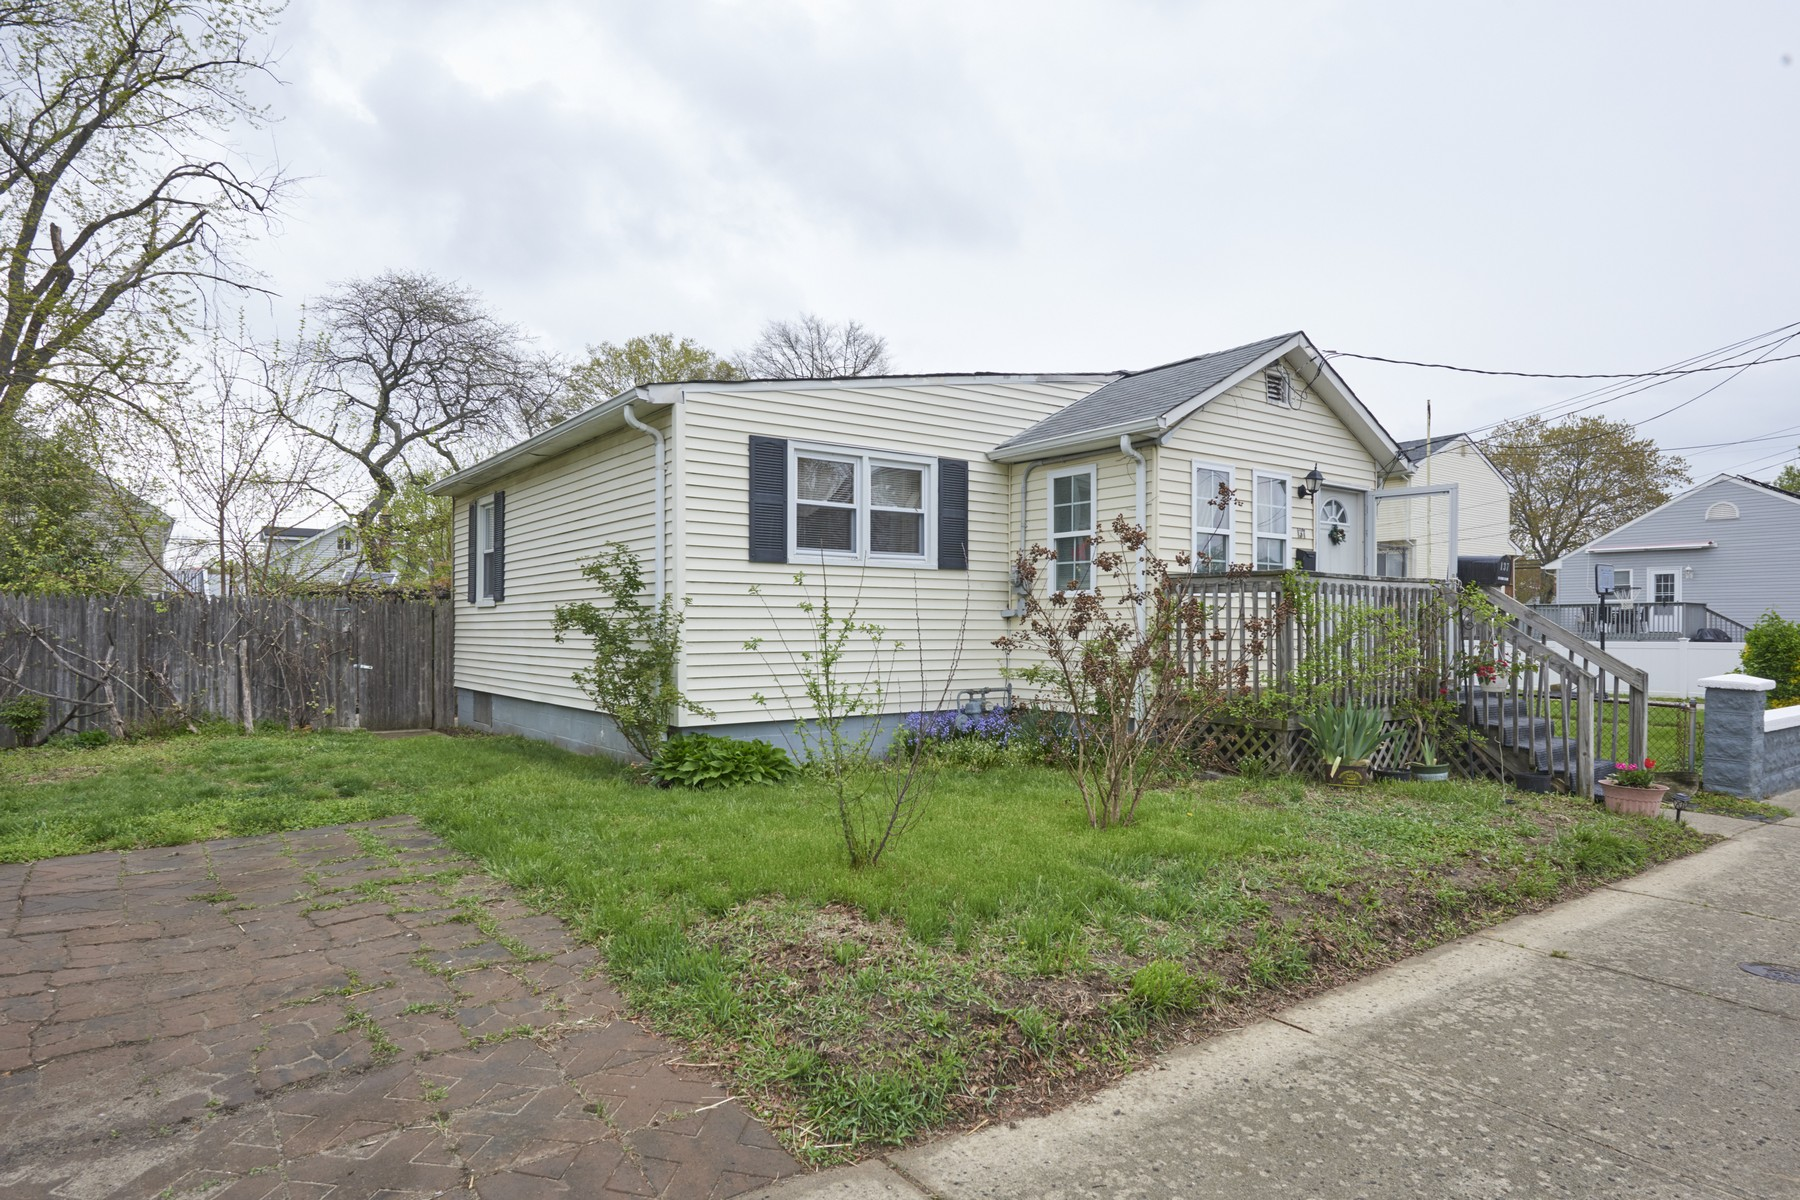 Single Family Homes for Sale at 137 Maple Avenue Keansburg, New Jersey 07734 United States